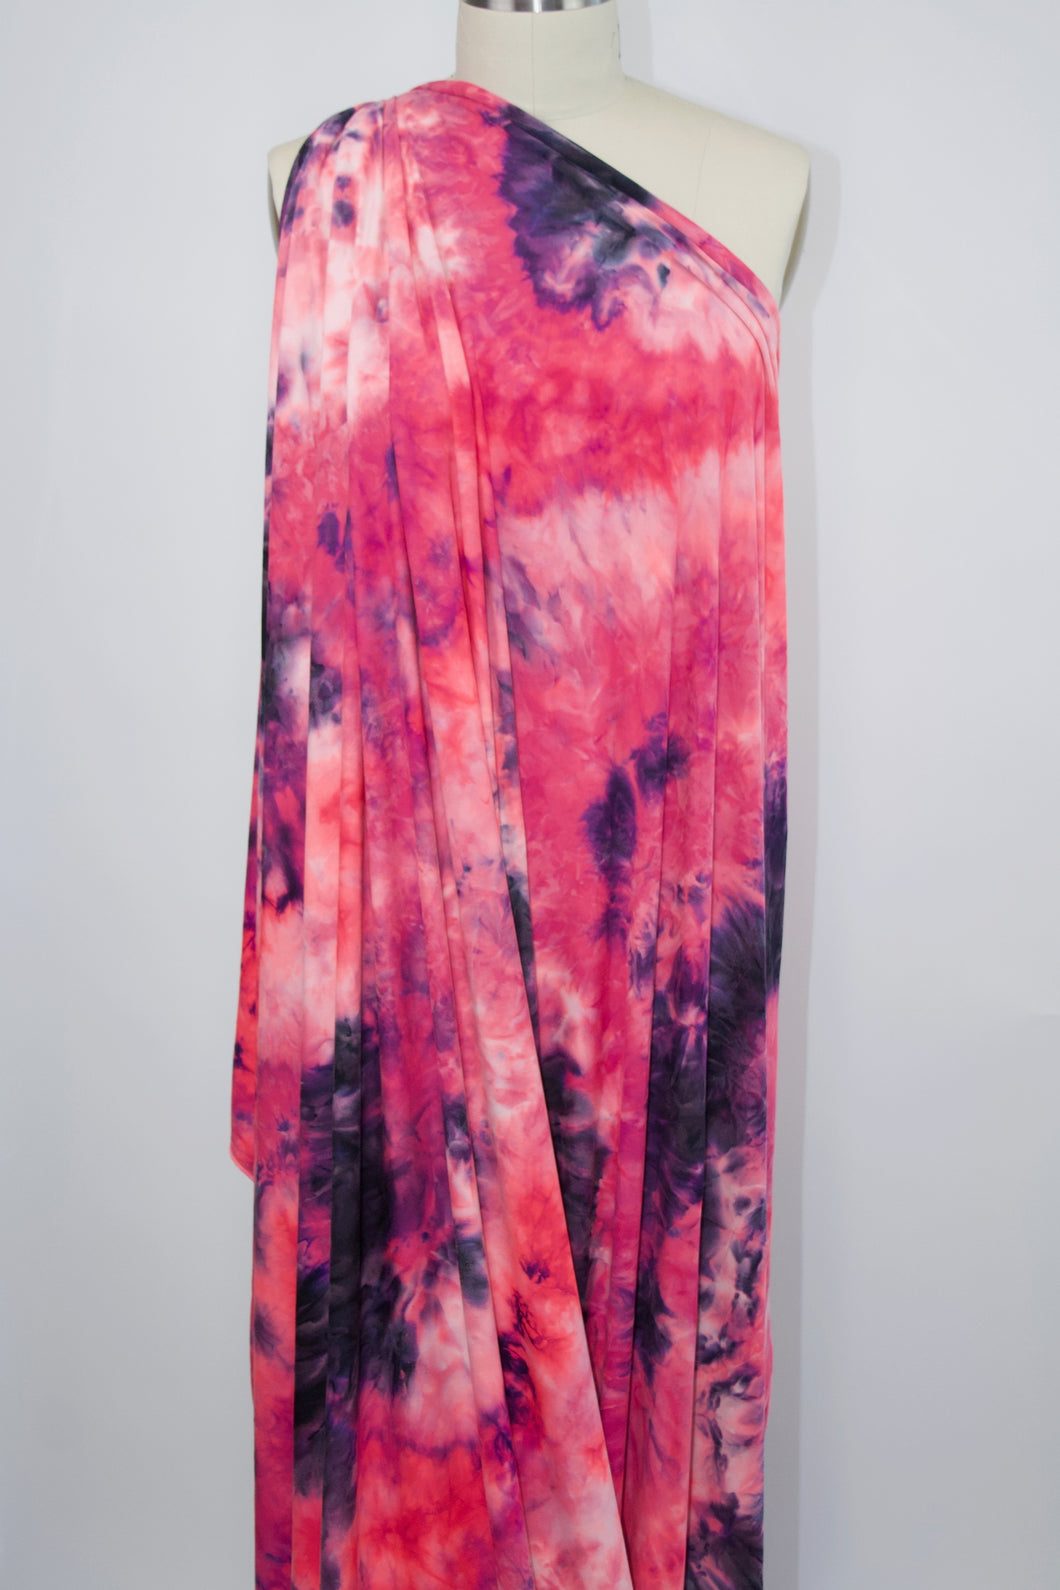 Pink Lady Tye Dye Double Brushed ITY Jersey - Pink Tones